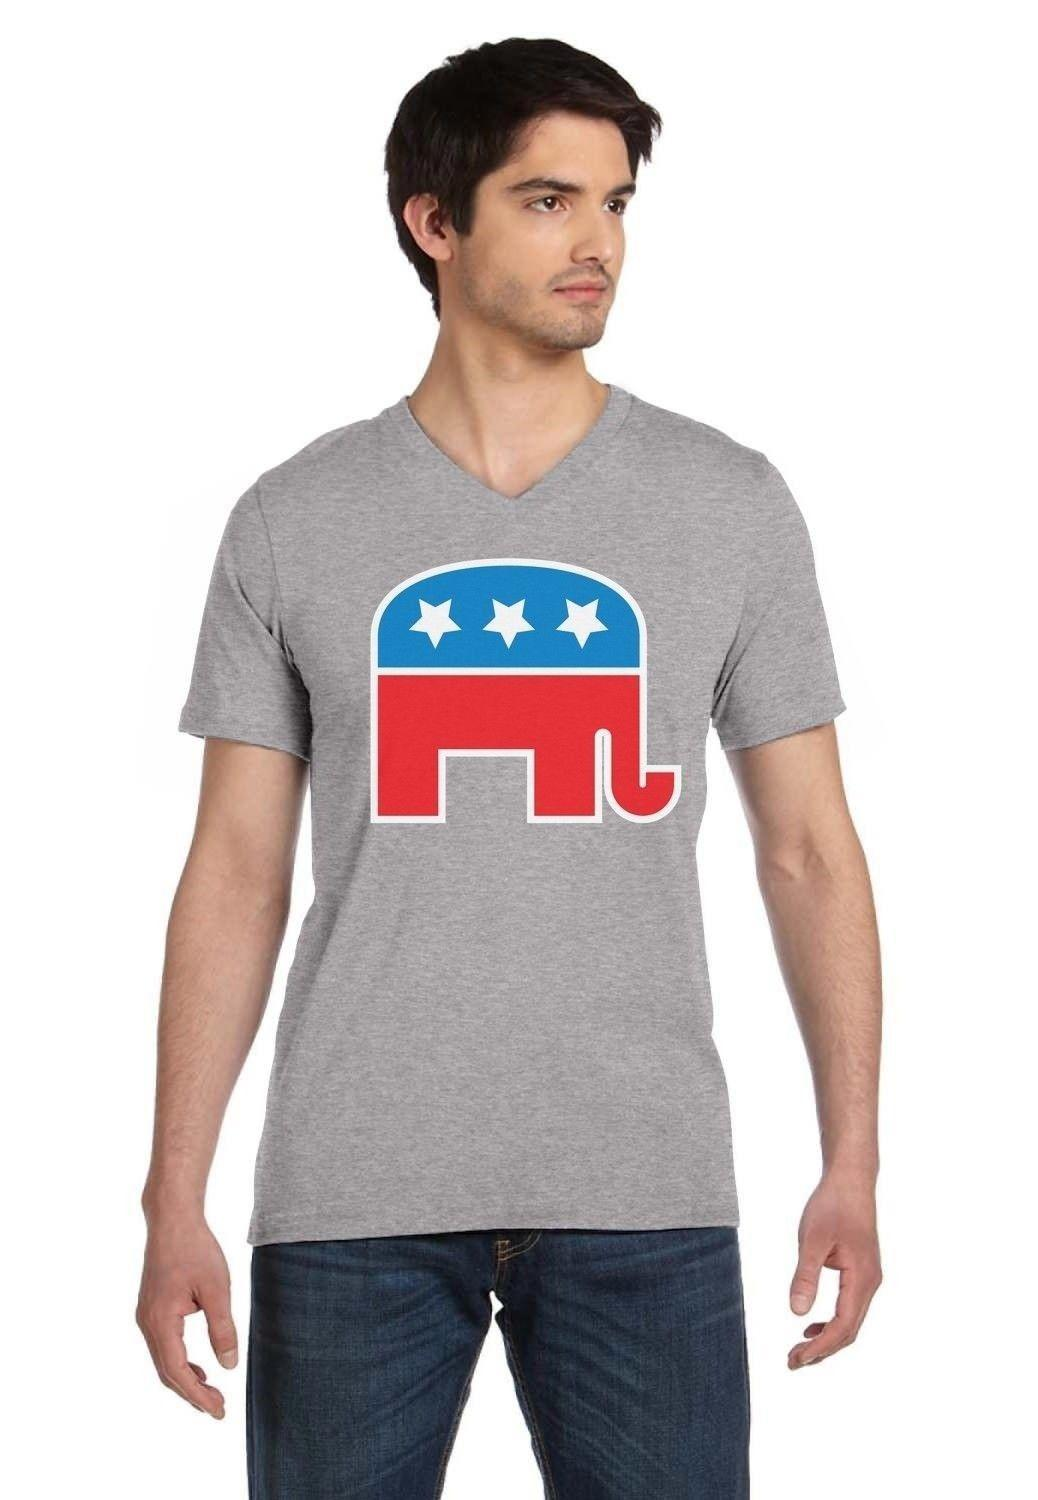 eaf3fcf69b6586 Republican Party Elephant Logo Conservative GOP V Neck T Shirt Vote USA Tee  Shirt A Day Shop T Shirt Online From Yuxin007